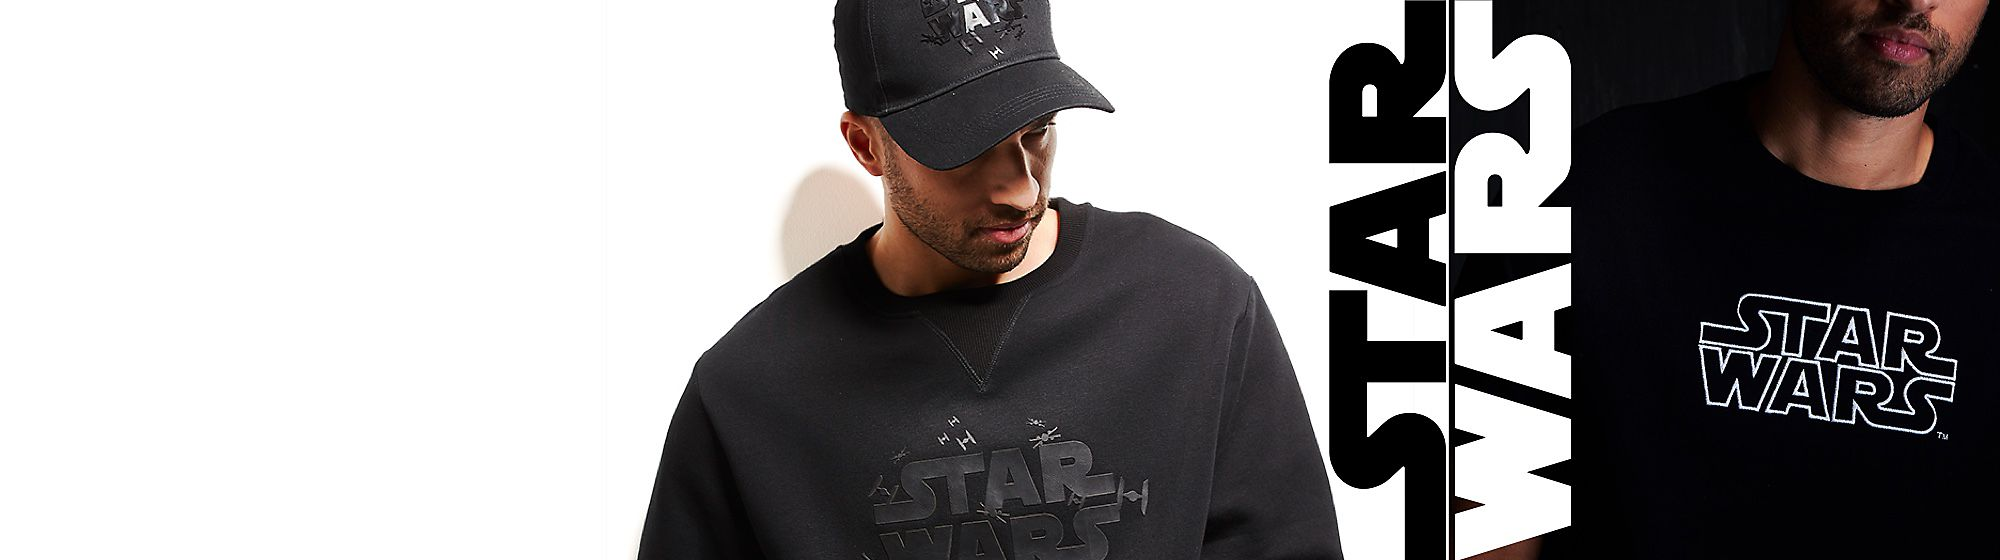 Star Wars Adults Gear up for a galactic adventure with our range of clothes, homeware and entertainment.